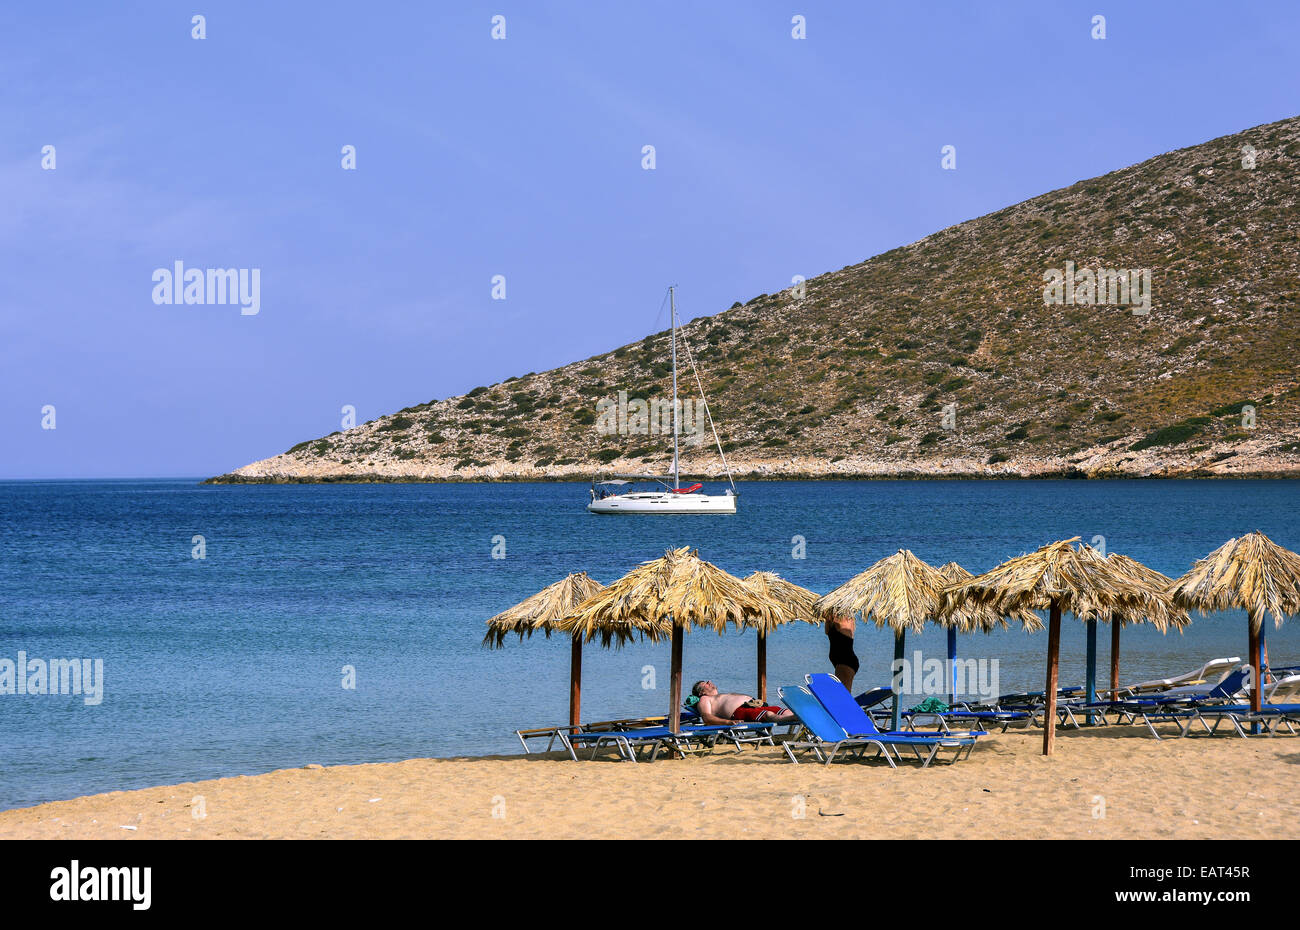 The organized 'Agia Theodoti'  bay,  situated on the northeastern  coast of Ios island, Cyclades, Greece - Stock Image